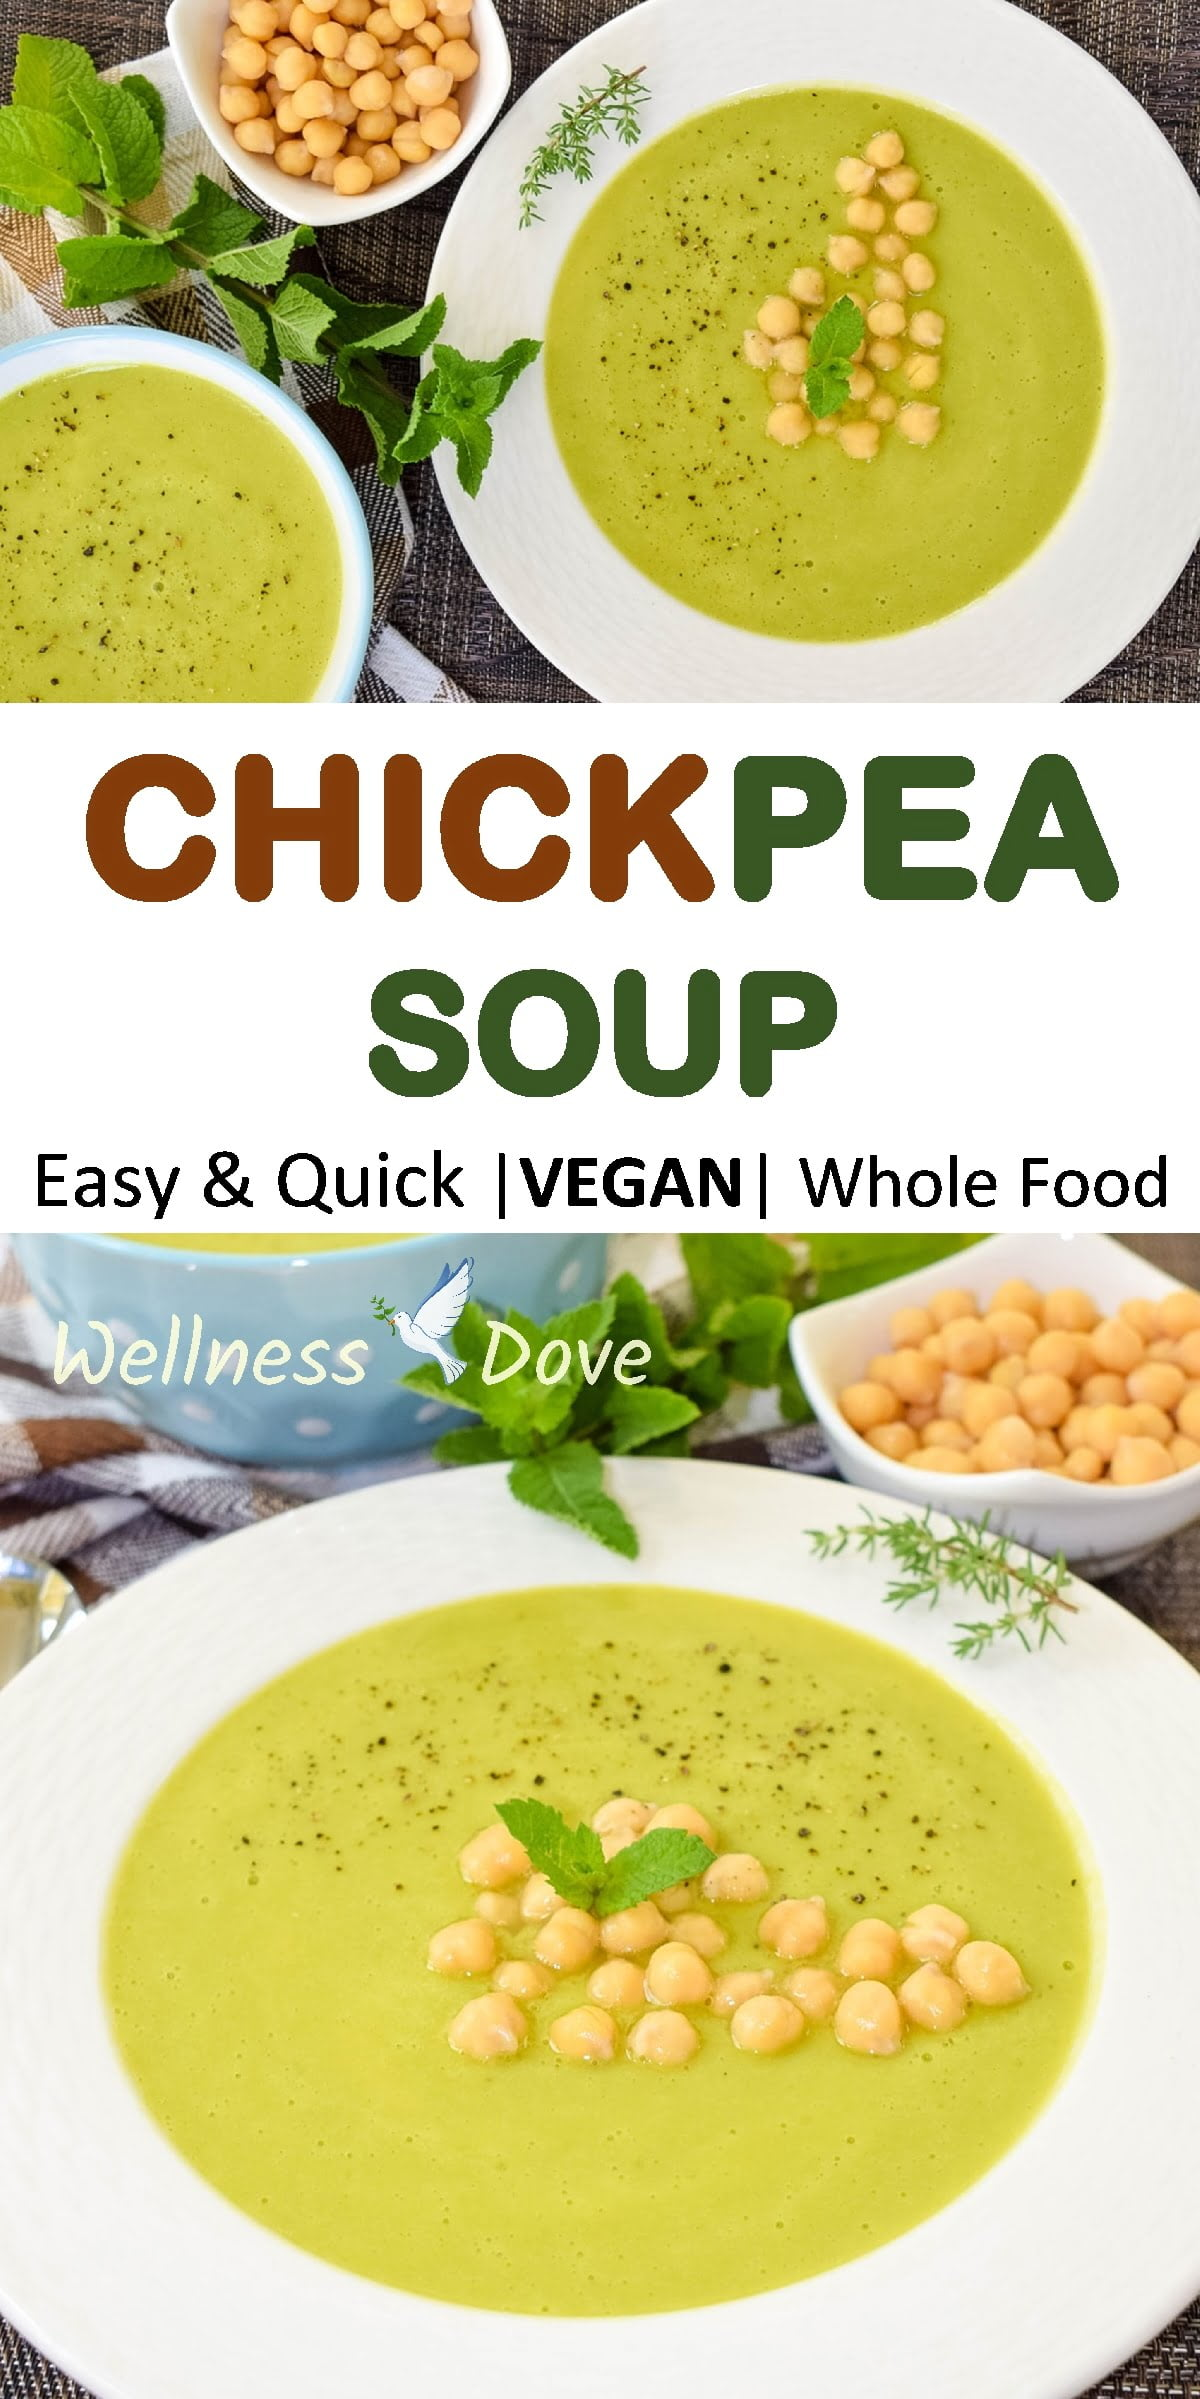 Super easy and quick to cook, delicious bean soup. Truly appetizing and irresistible with its bright green color this soup looks and tastes superb! Great for your health, as well, with only natural whole plant ingredients!